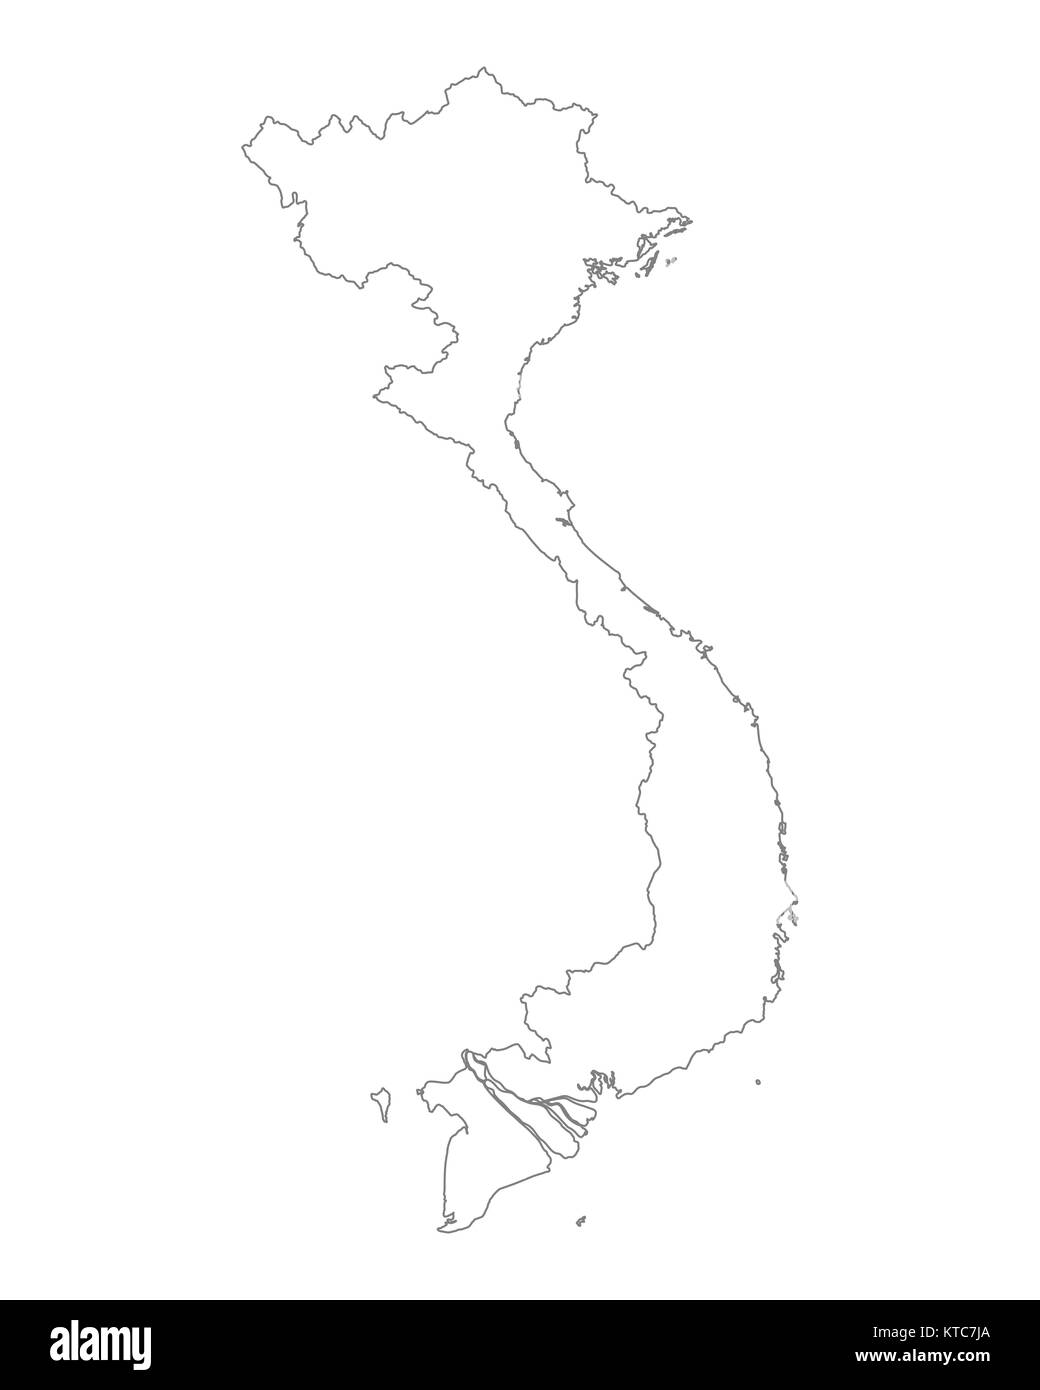 Map Vietnam Black and White Stock Photos & Images - Alamy